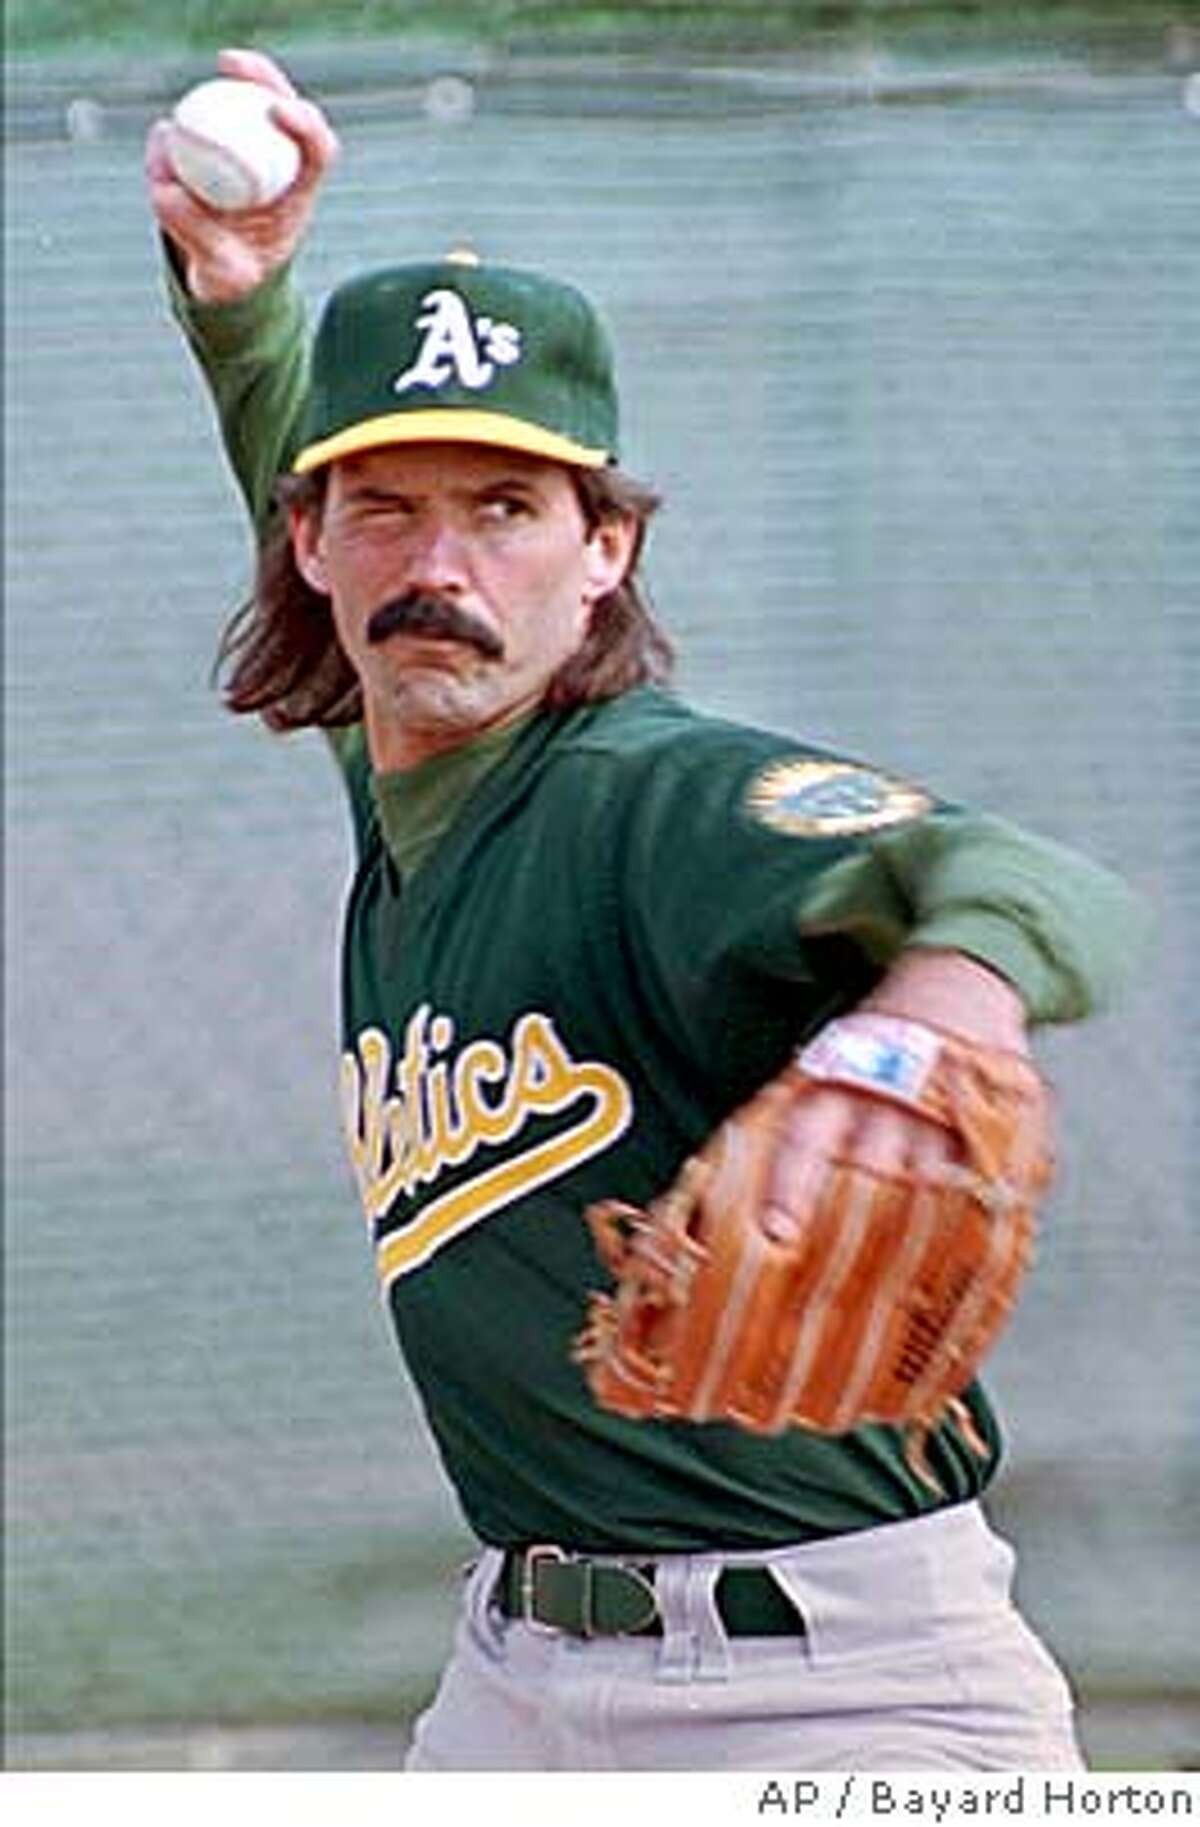 Oakland Athletics pitcher Dennis Eckersley throws during practice at the first day of spring training in Scottsdale, Ariz., Saturday, Feb. 20, 1994. Eckersley only threw a few pitches before stopping and complaining of a sore neck. (AP Photo/Bayard Horton) ALSO RAN 10/20/95, 2/14/96 04/16/1999 CAT